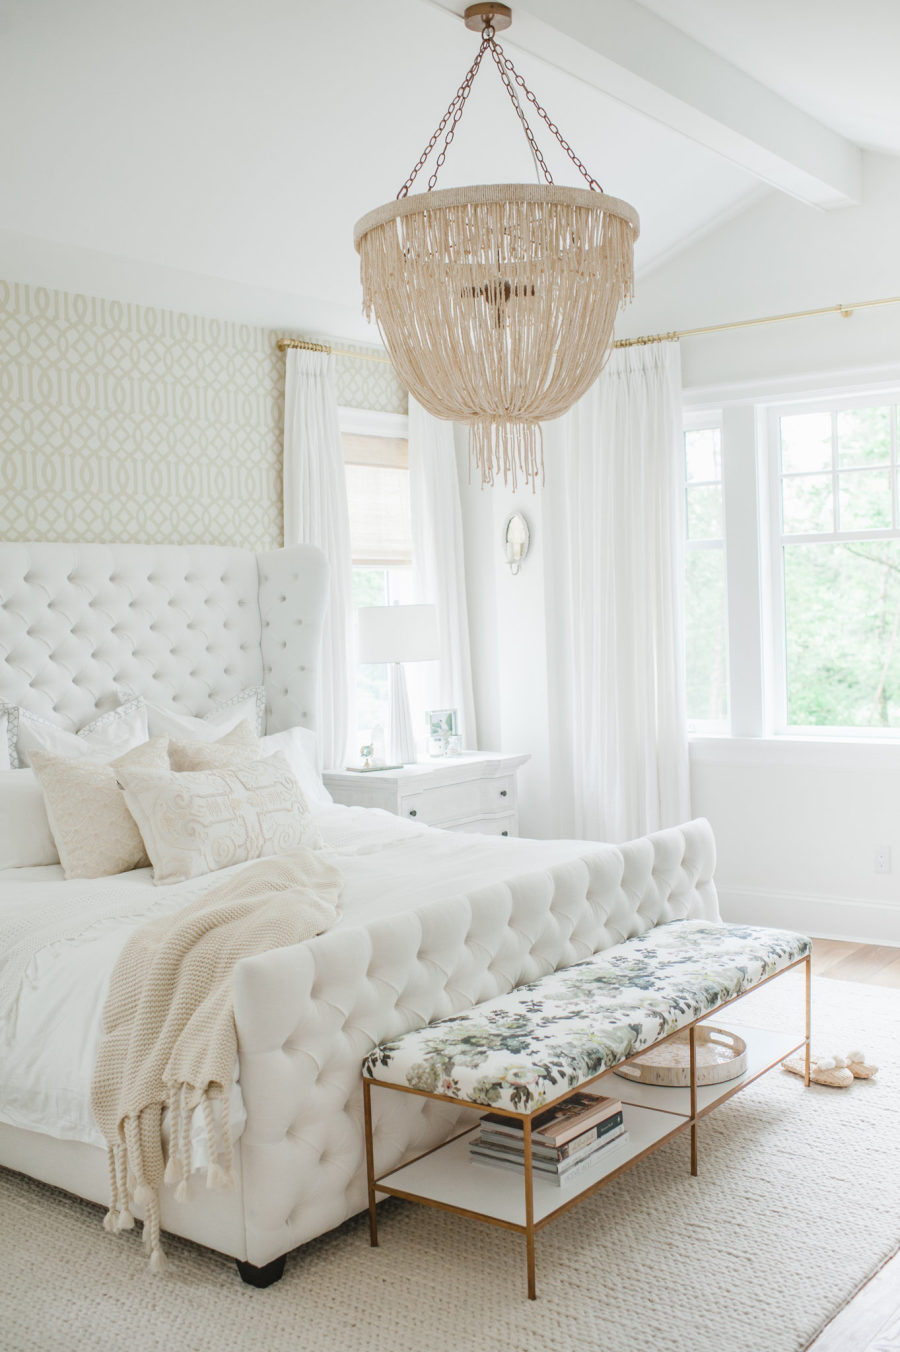 Decorating a bedroom with white tufted bed